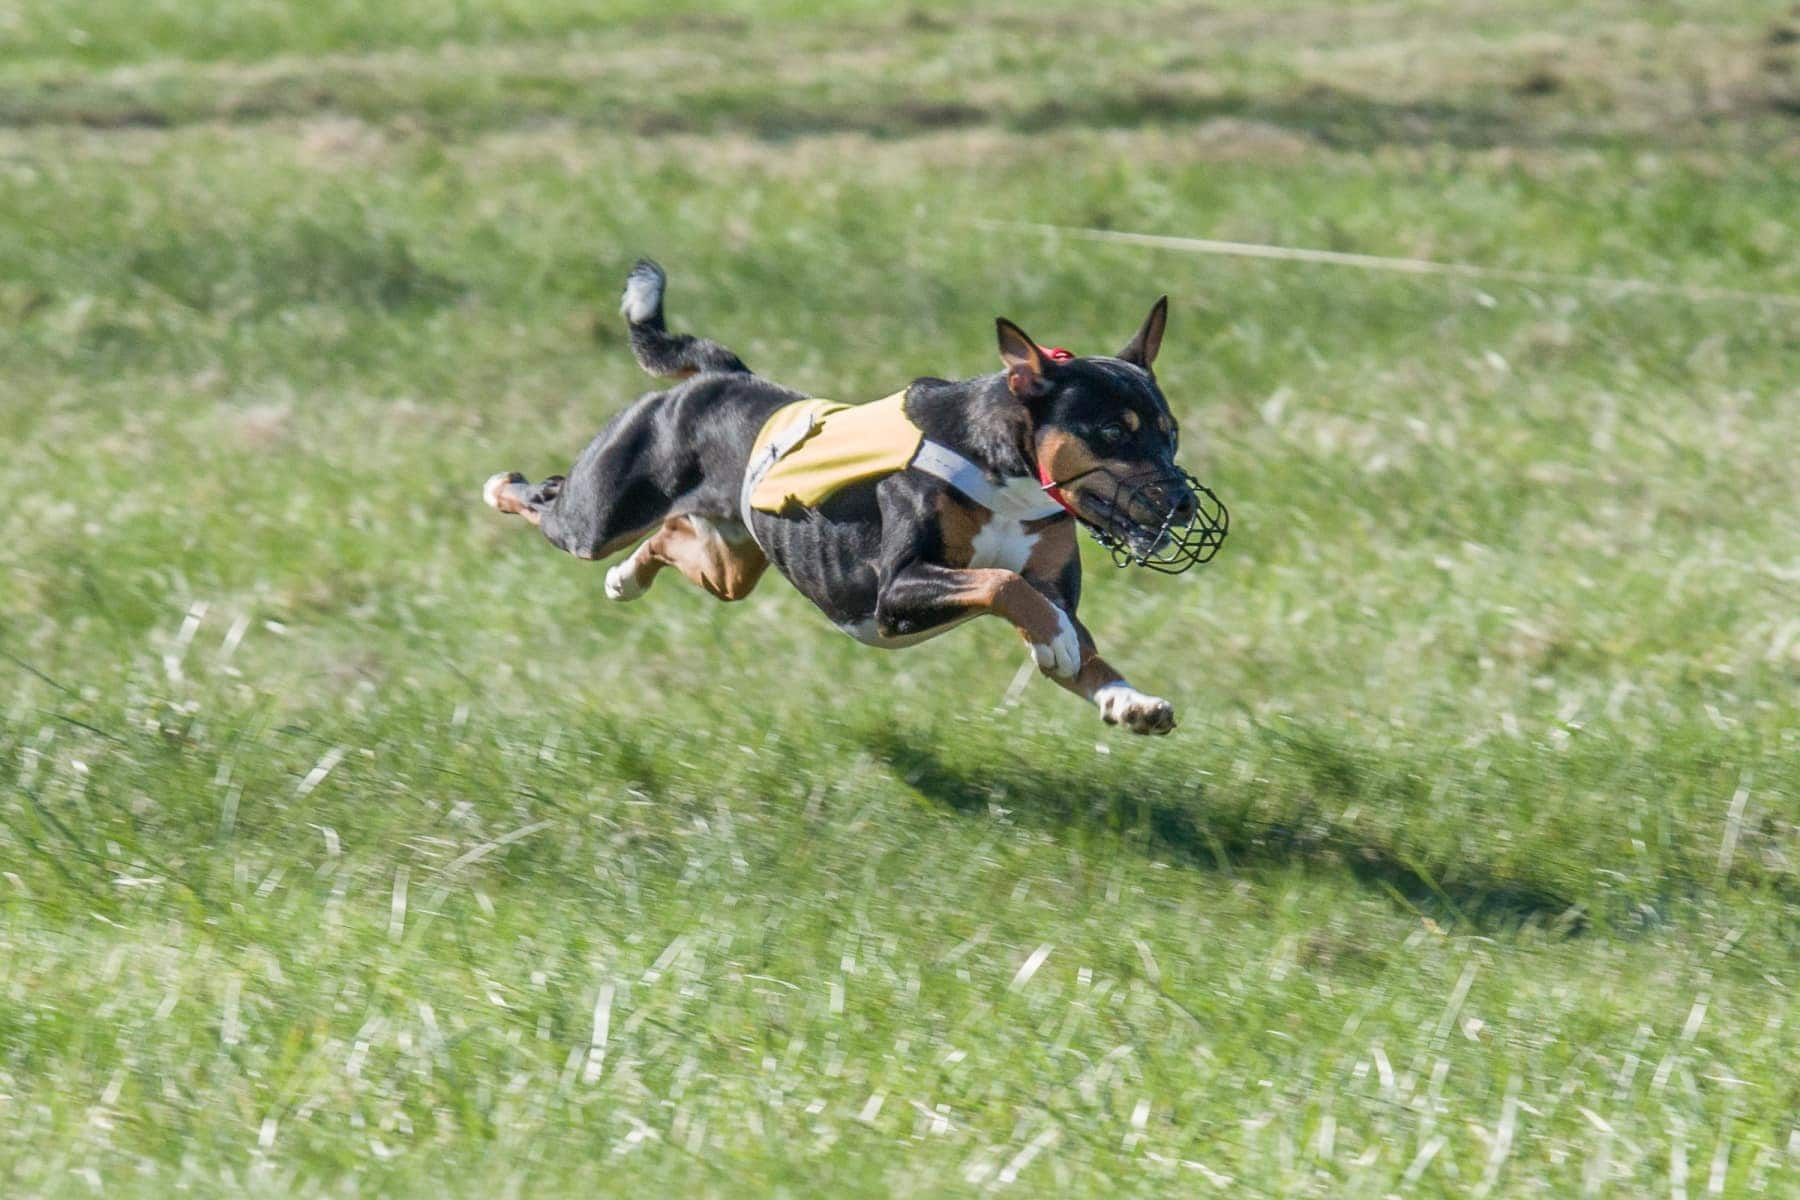 Spryos lure coursing